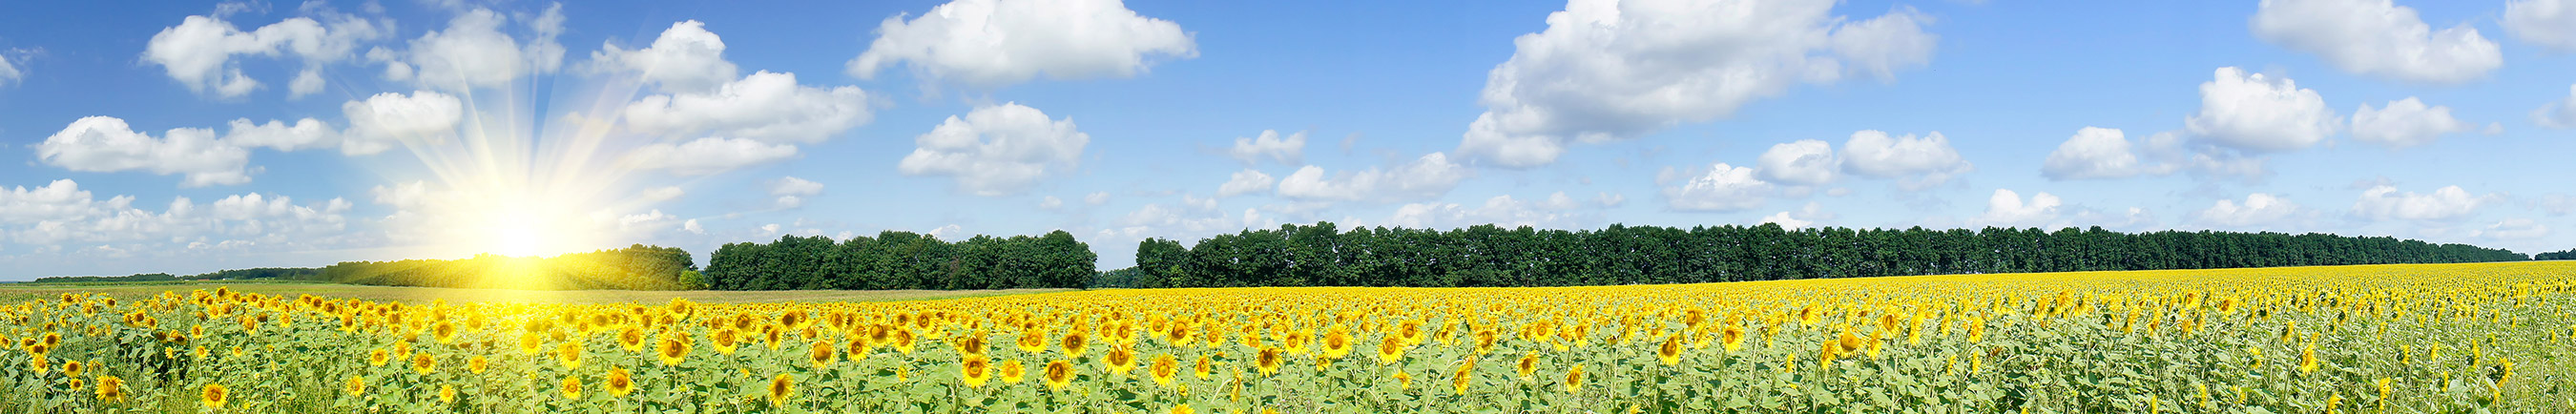 blog_sunflowers